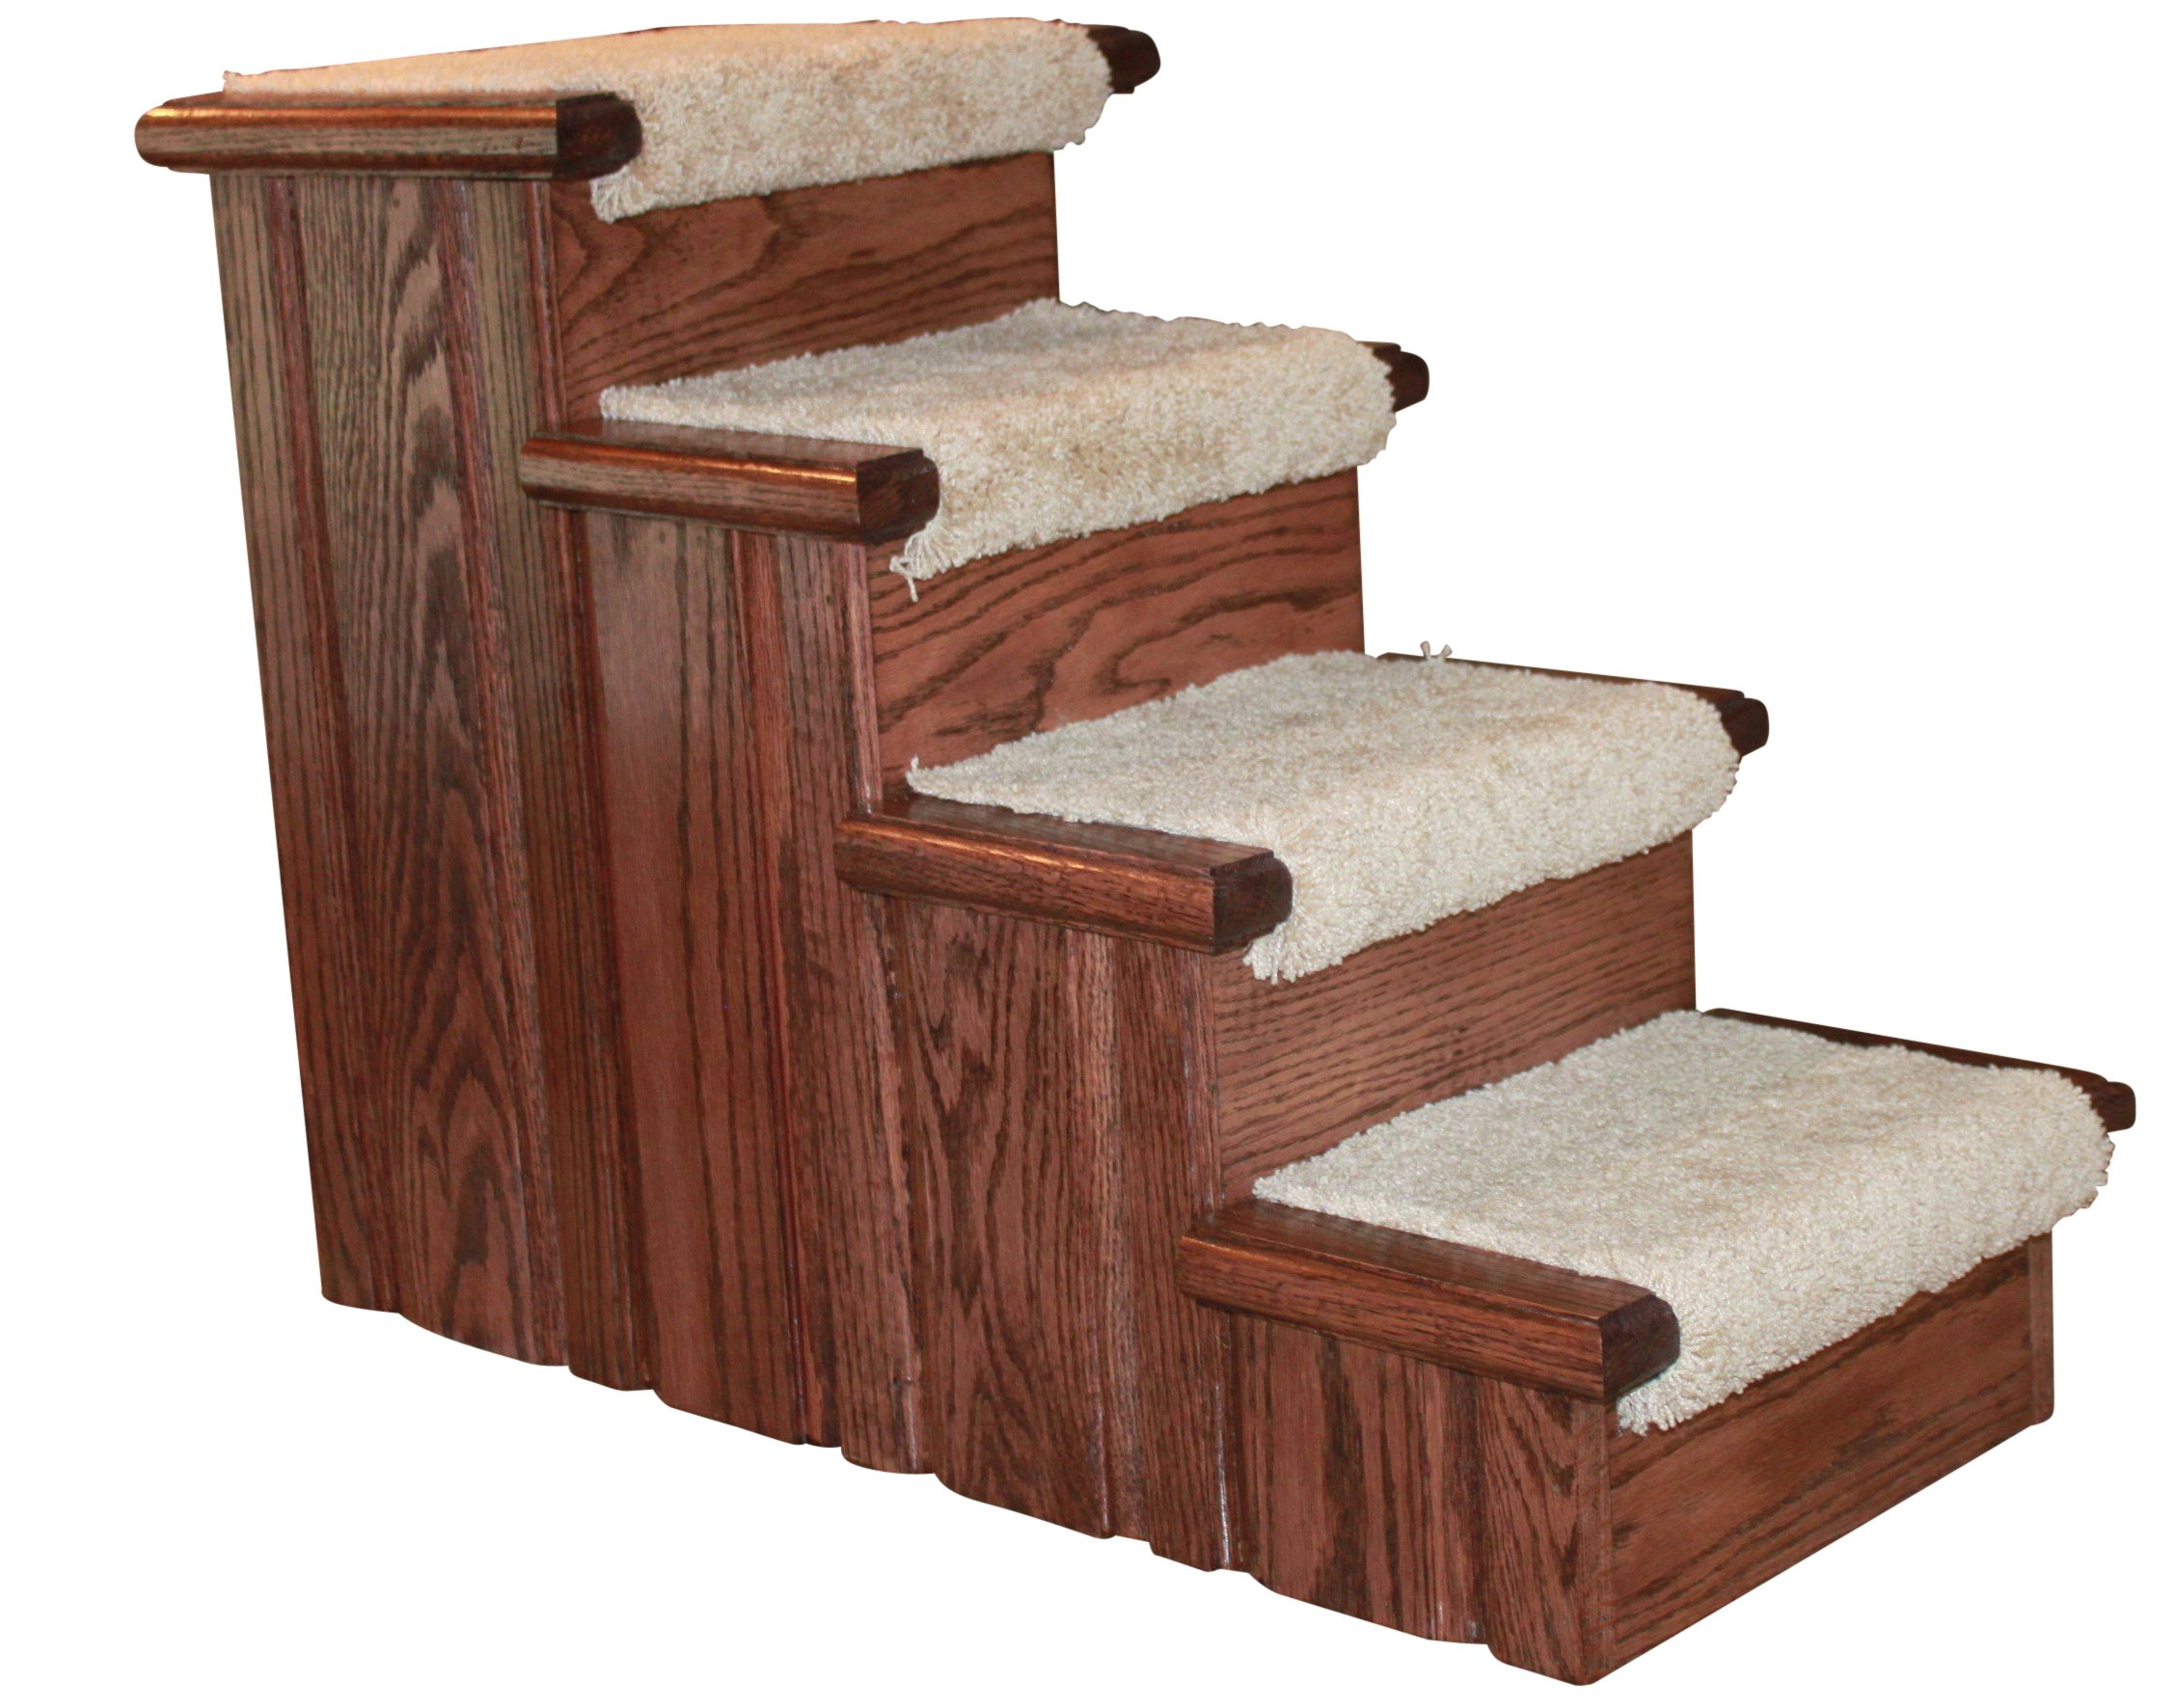 Premier Pet Steps Tall Raised Panel Dog Steps, Carpeted Tread with a Rich Cherry Stain, 23-Inch by Premier Pet Steps